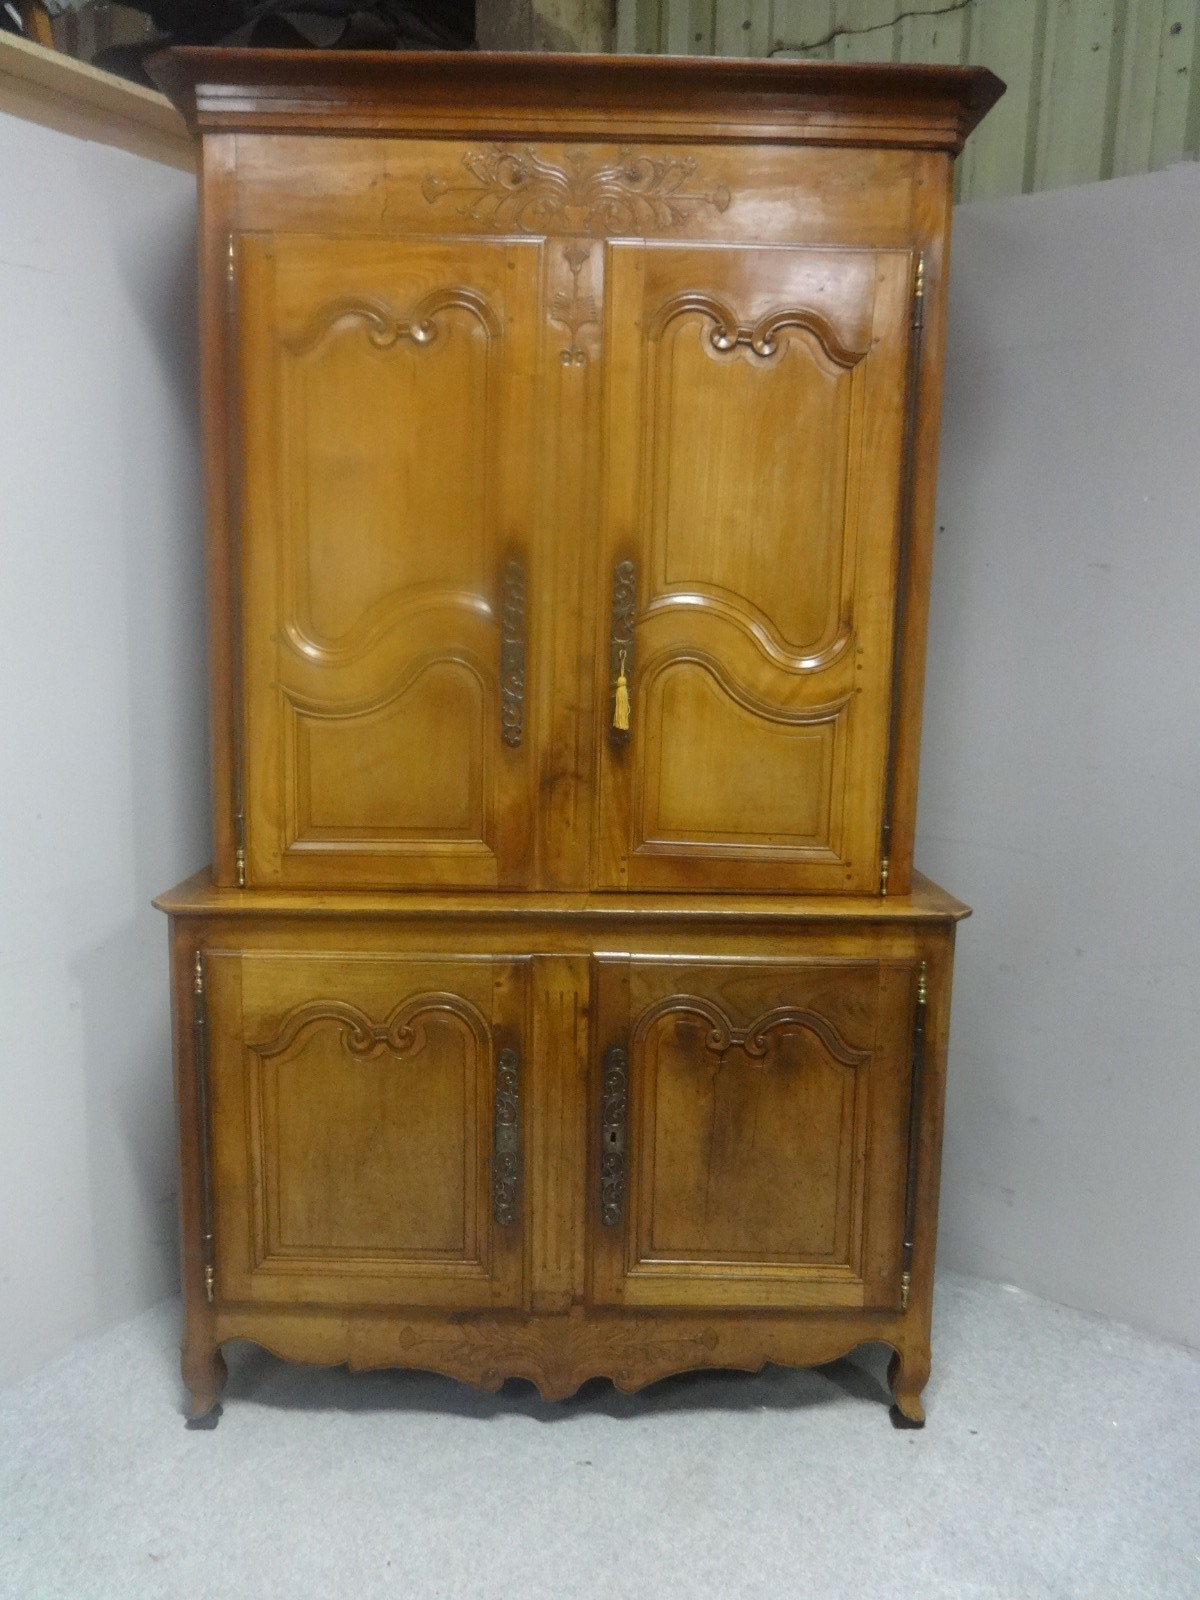 Fabulous French Provincial Fruitwood Cupboard c.1790 (1 of 1)